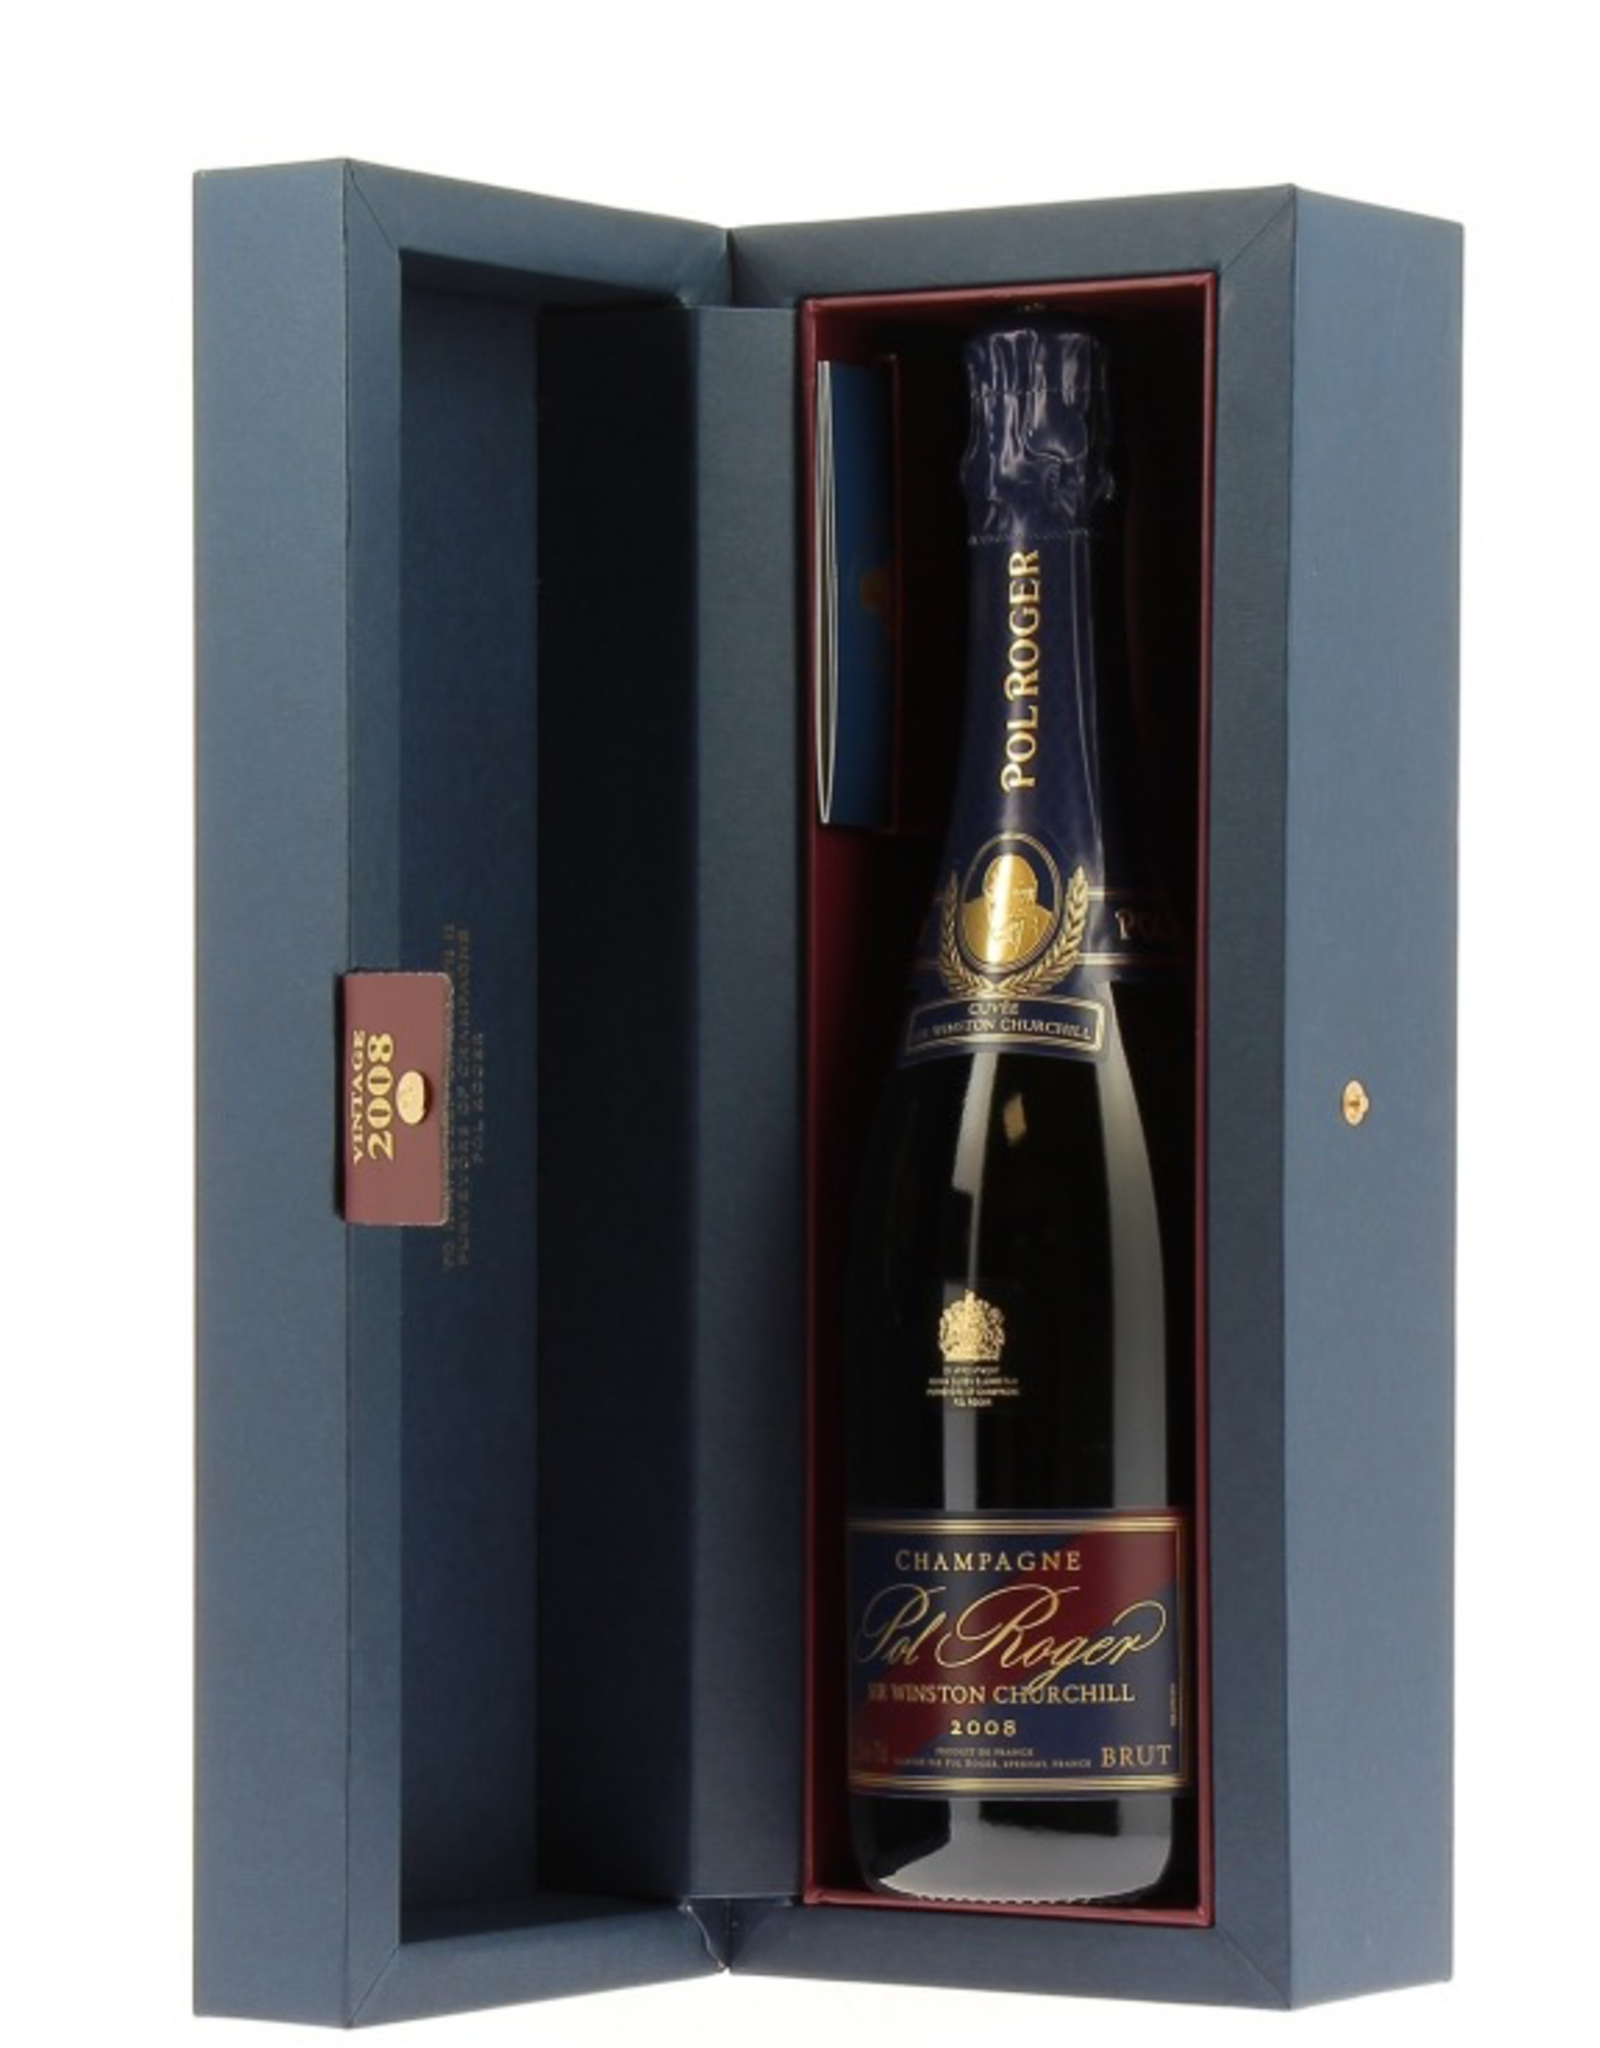 Sparkling Wine 2008, Pol Roger Cuvee Sir Winston Churchill Brut, Champagne, Epernay, Champagne, France, 12.5% Alc, CT93.9 WE100 RP96